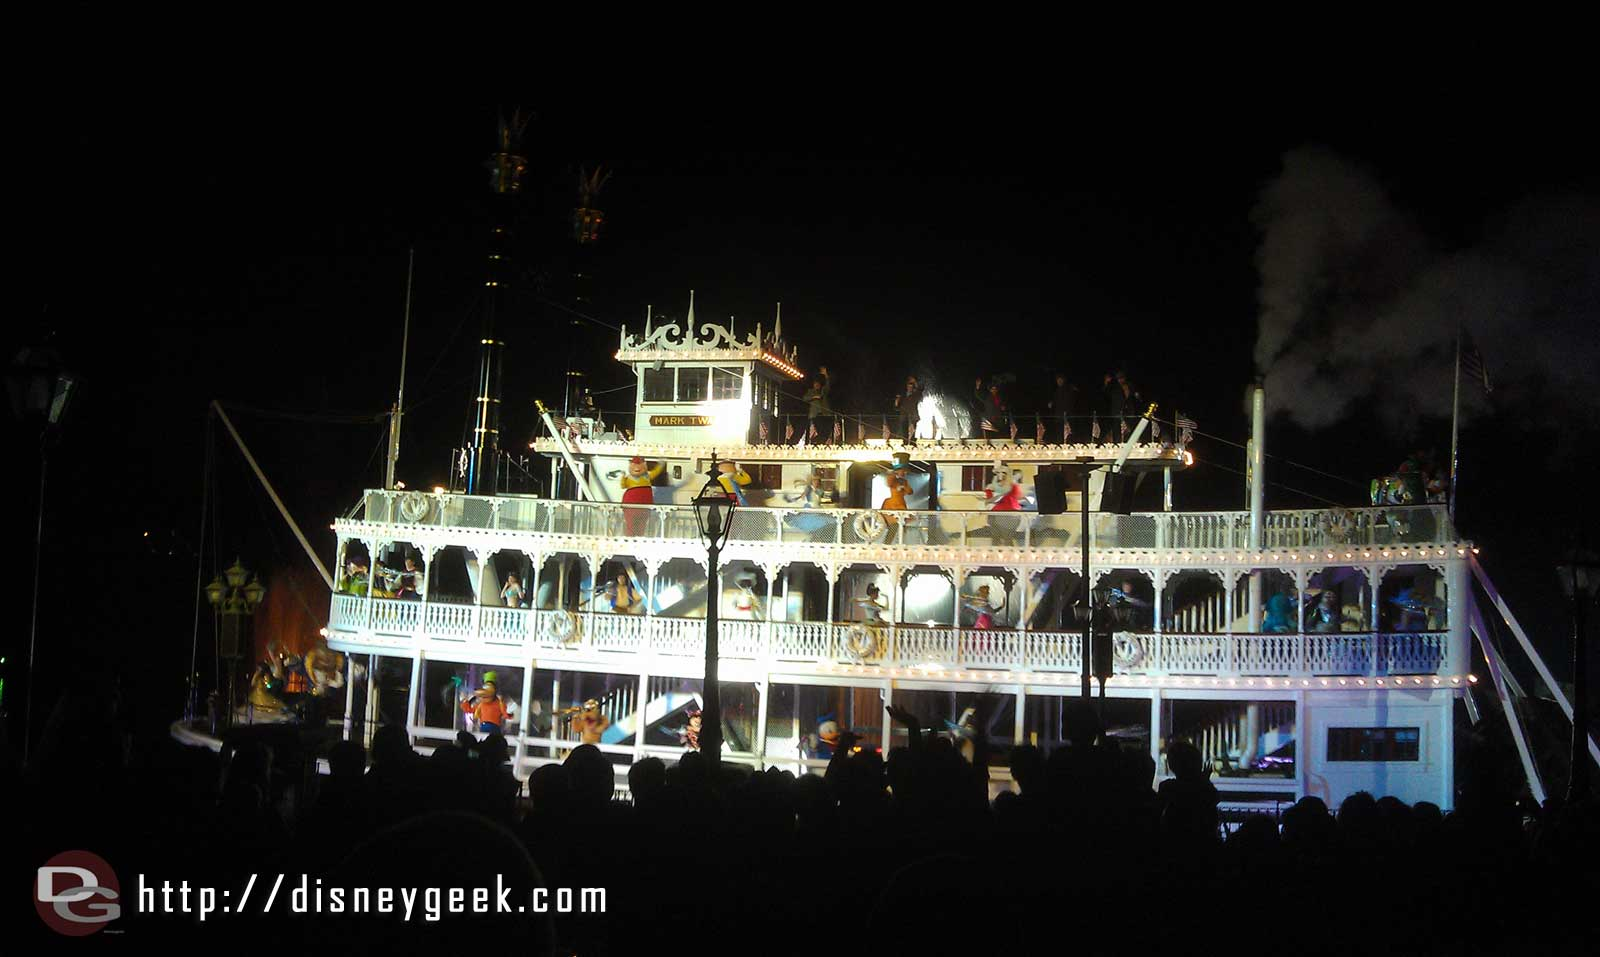 The Mark Twain making its pass durinh Fantasmic